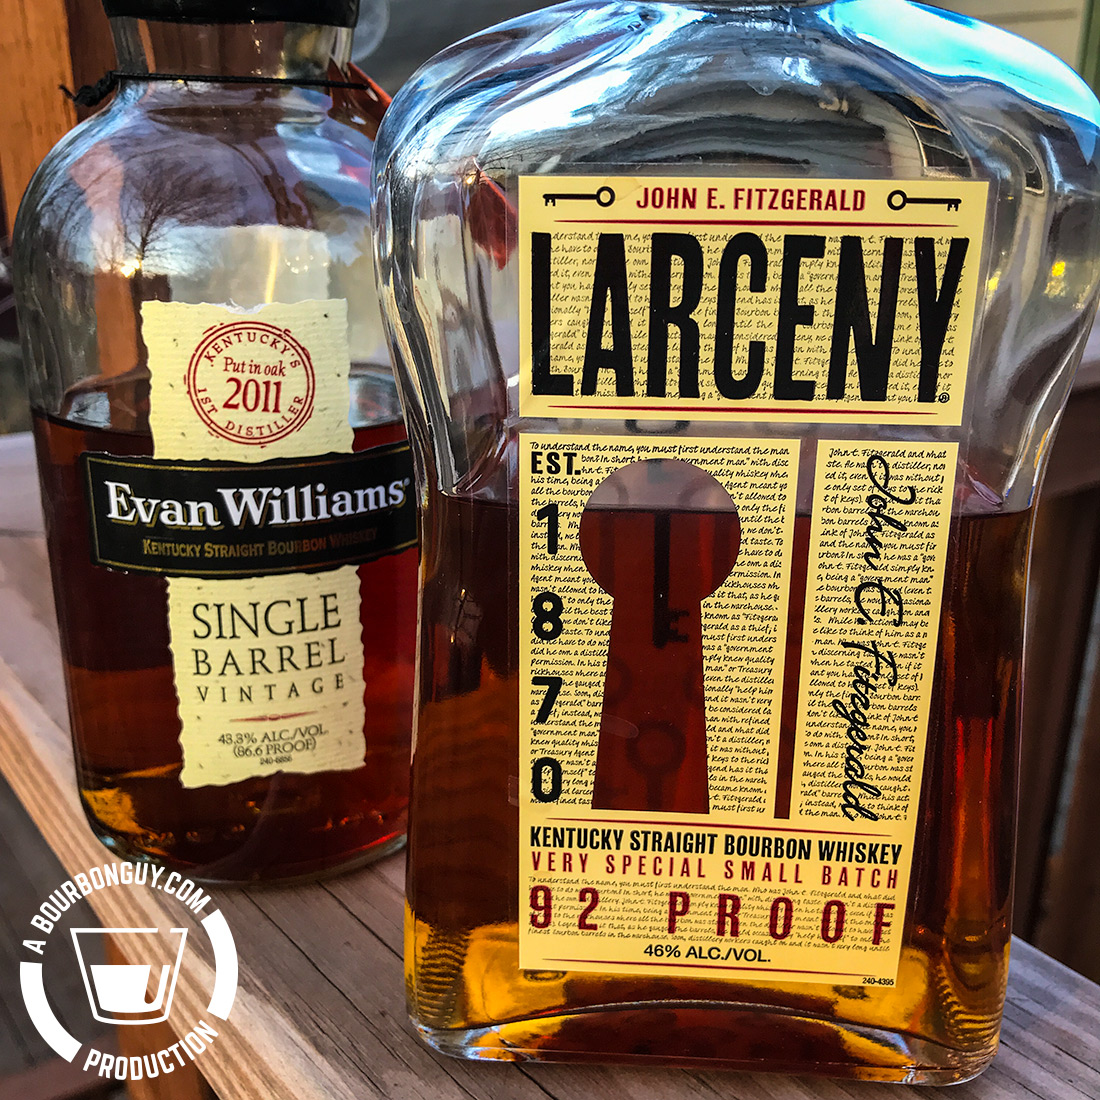 IMAGE: Bottle fronts of Larceny and Evan Williams Single Barrel